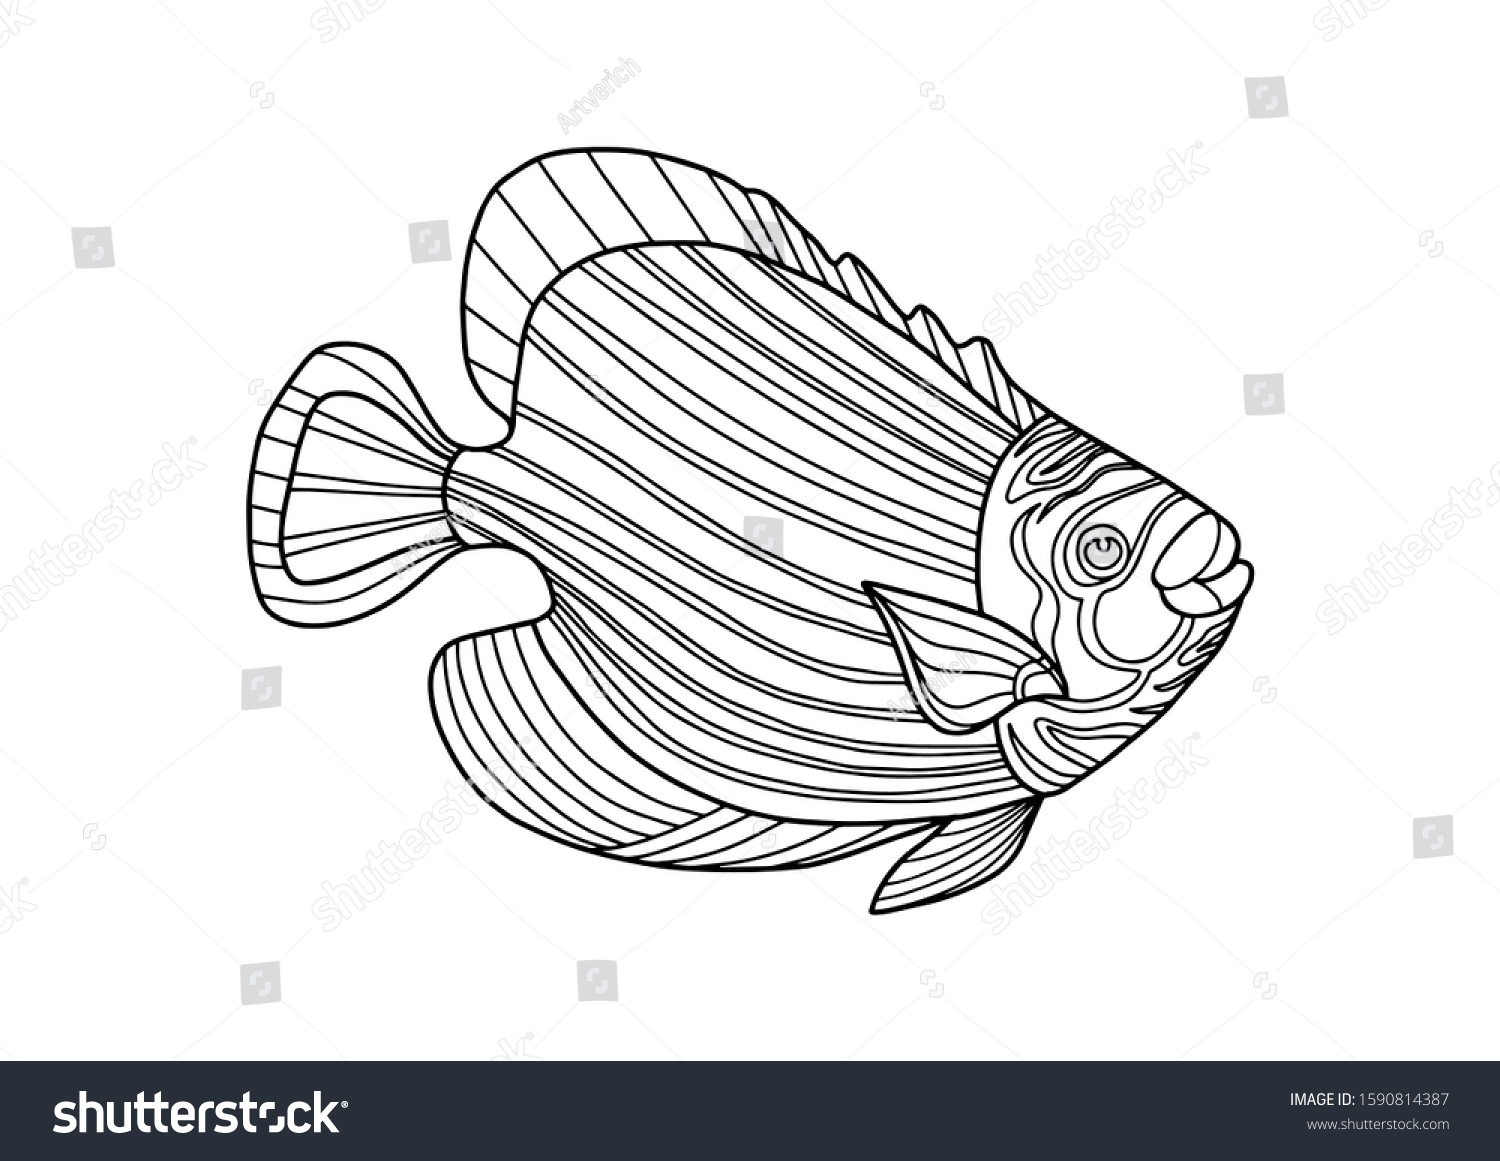 Ocean Fish Coloring Pages - High Quality Coloring Pages - Coloring ... | 1161x1500